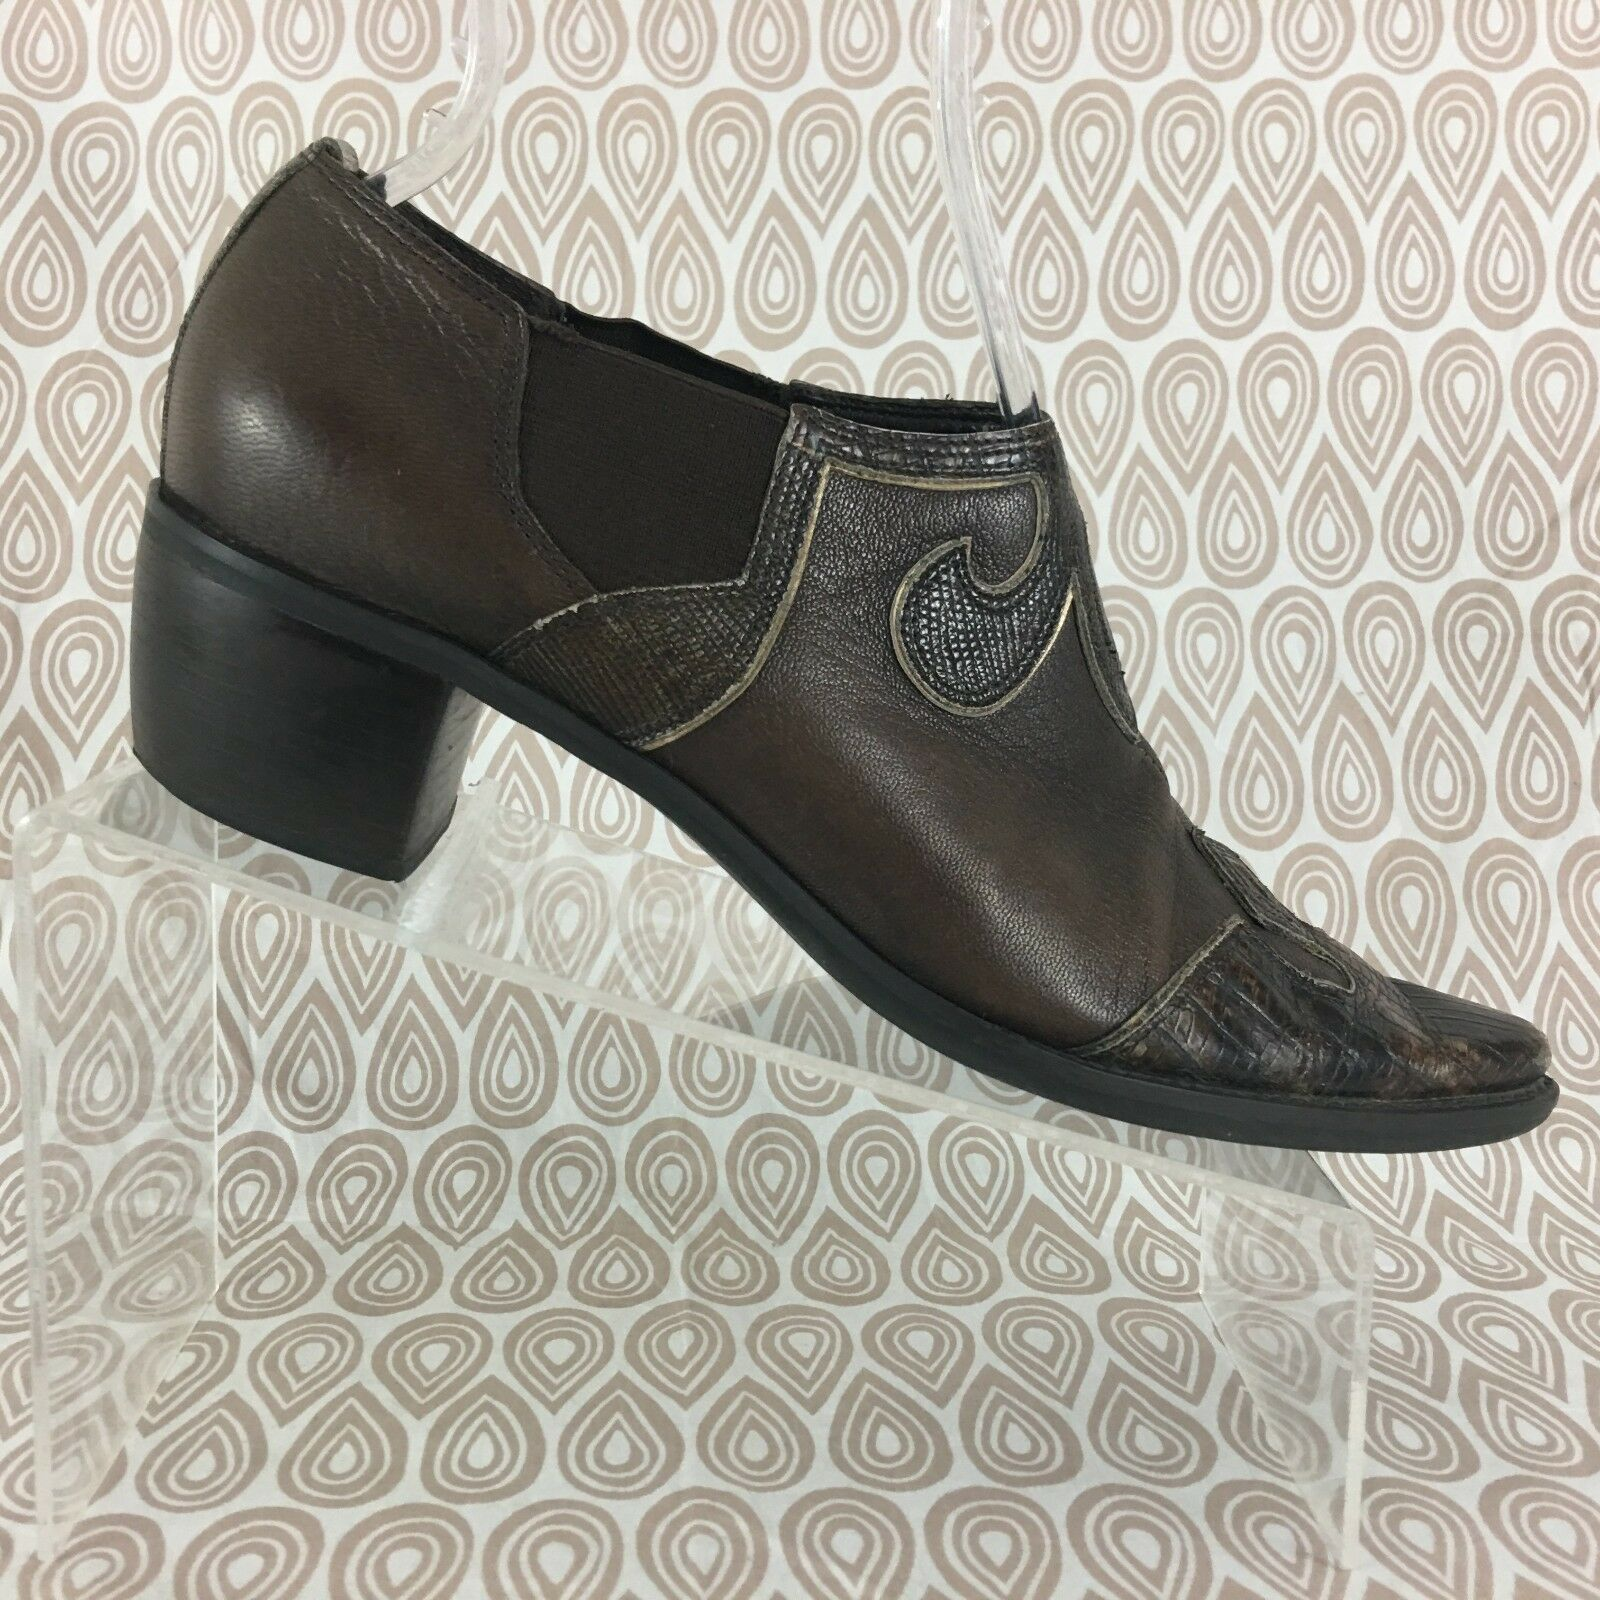 Franco Sarto Women's Brown Leather Low Top Ankle Cowboy Boots Size 9 M S174